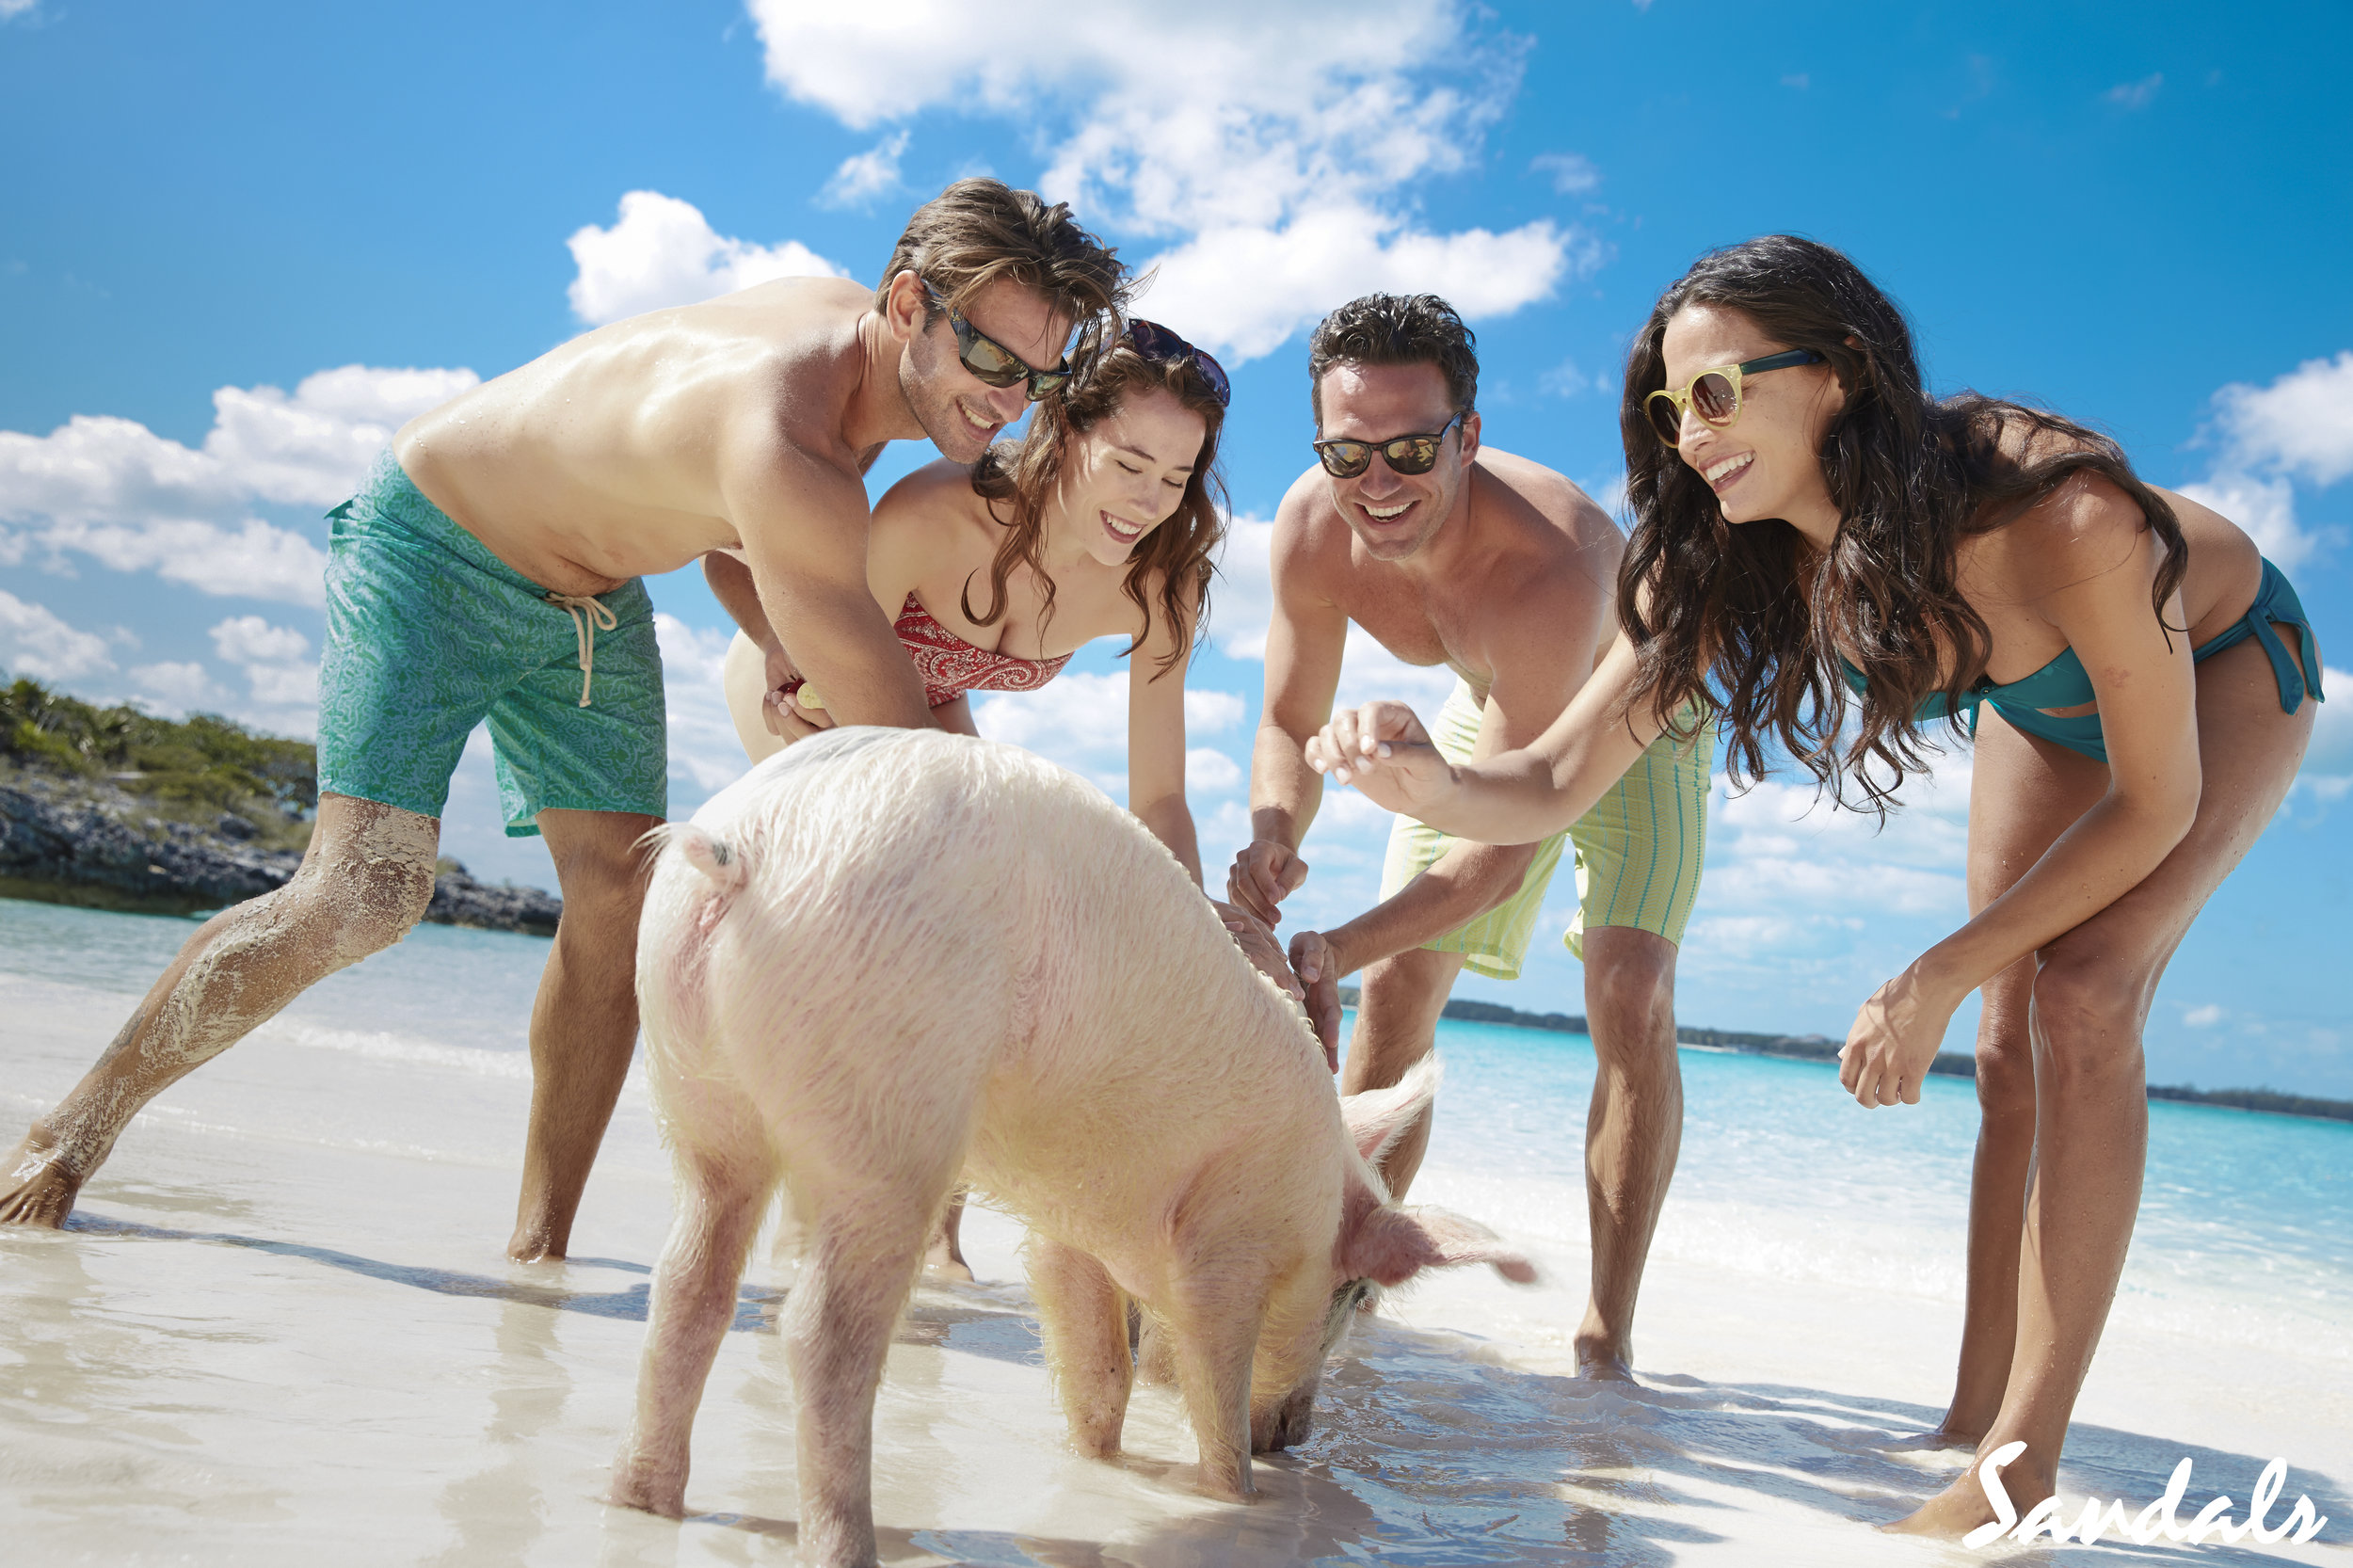 Don't just sit in your room…. - Get out and swim with the pigs, get on an ATV, do a little exploring!